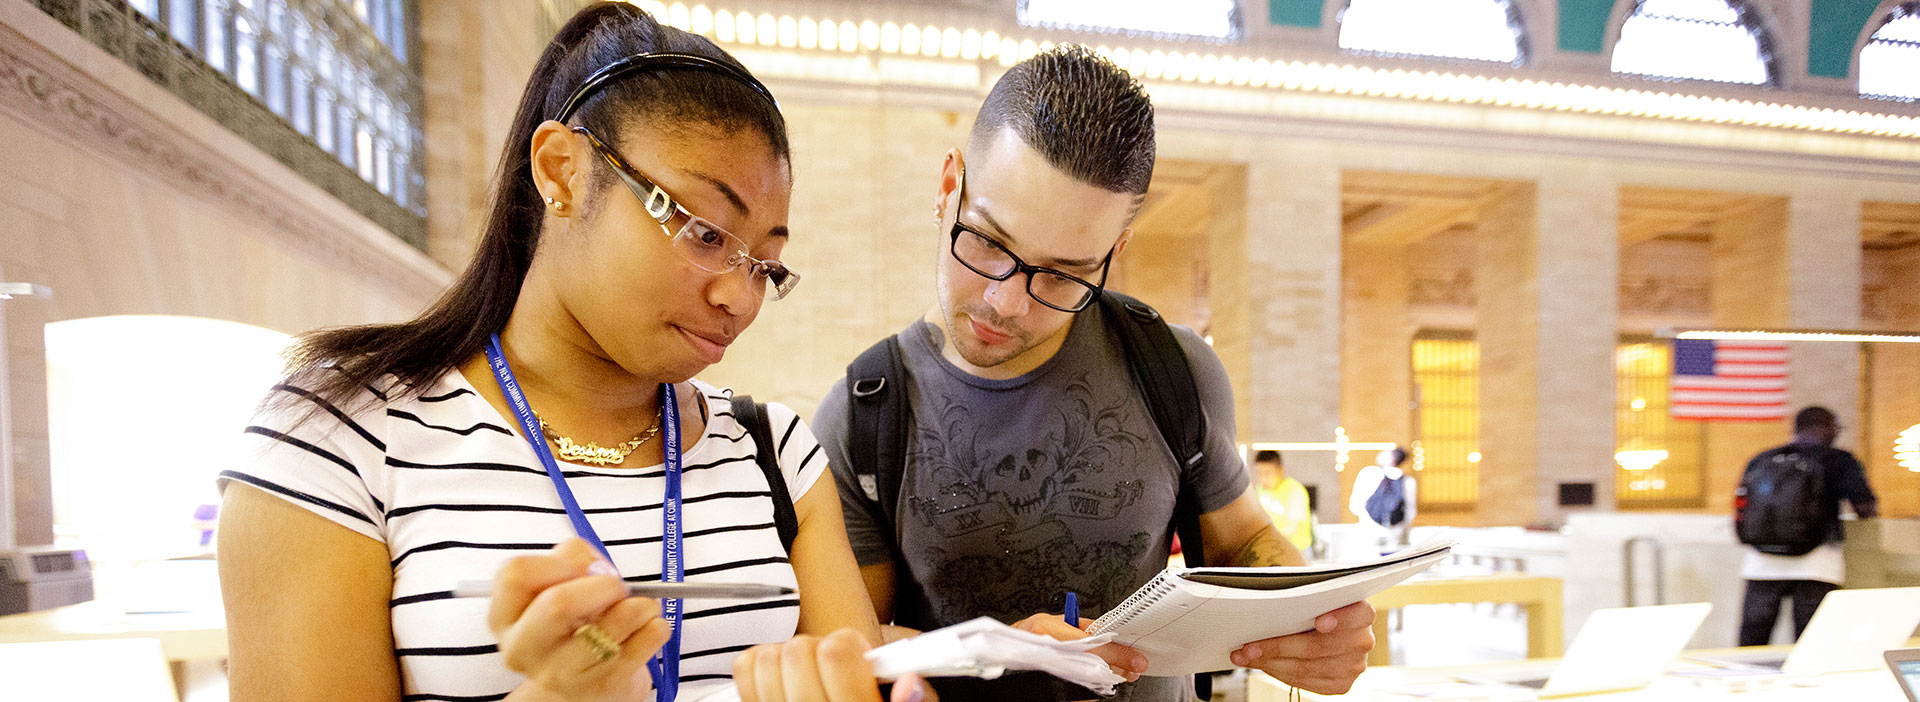 Two Summer Bridge students collaborating on an assignment in Grand Central Terminal